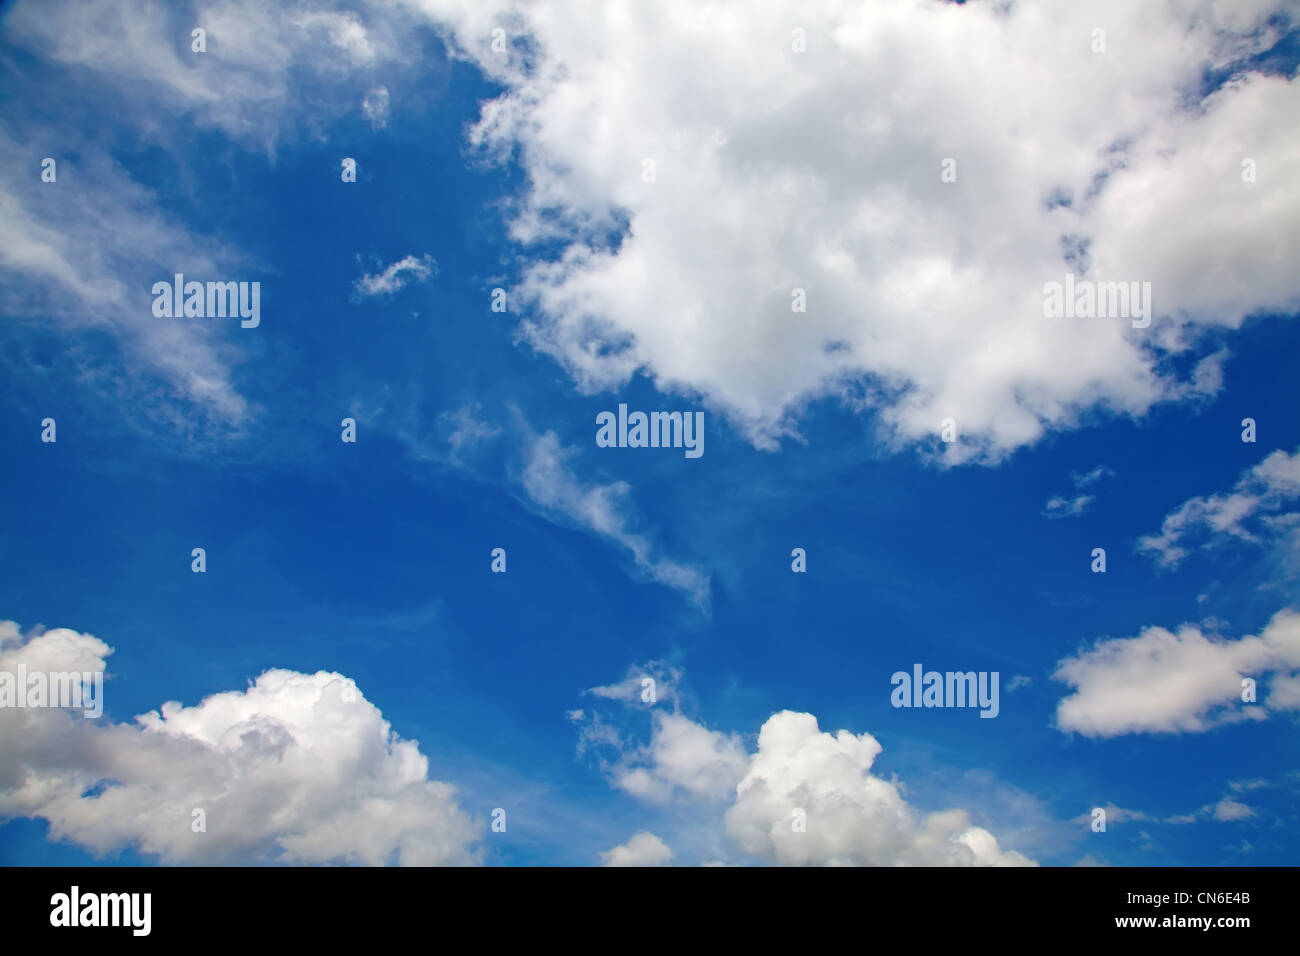 White fluffy clouds in the deep blue sky. - Stock Image